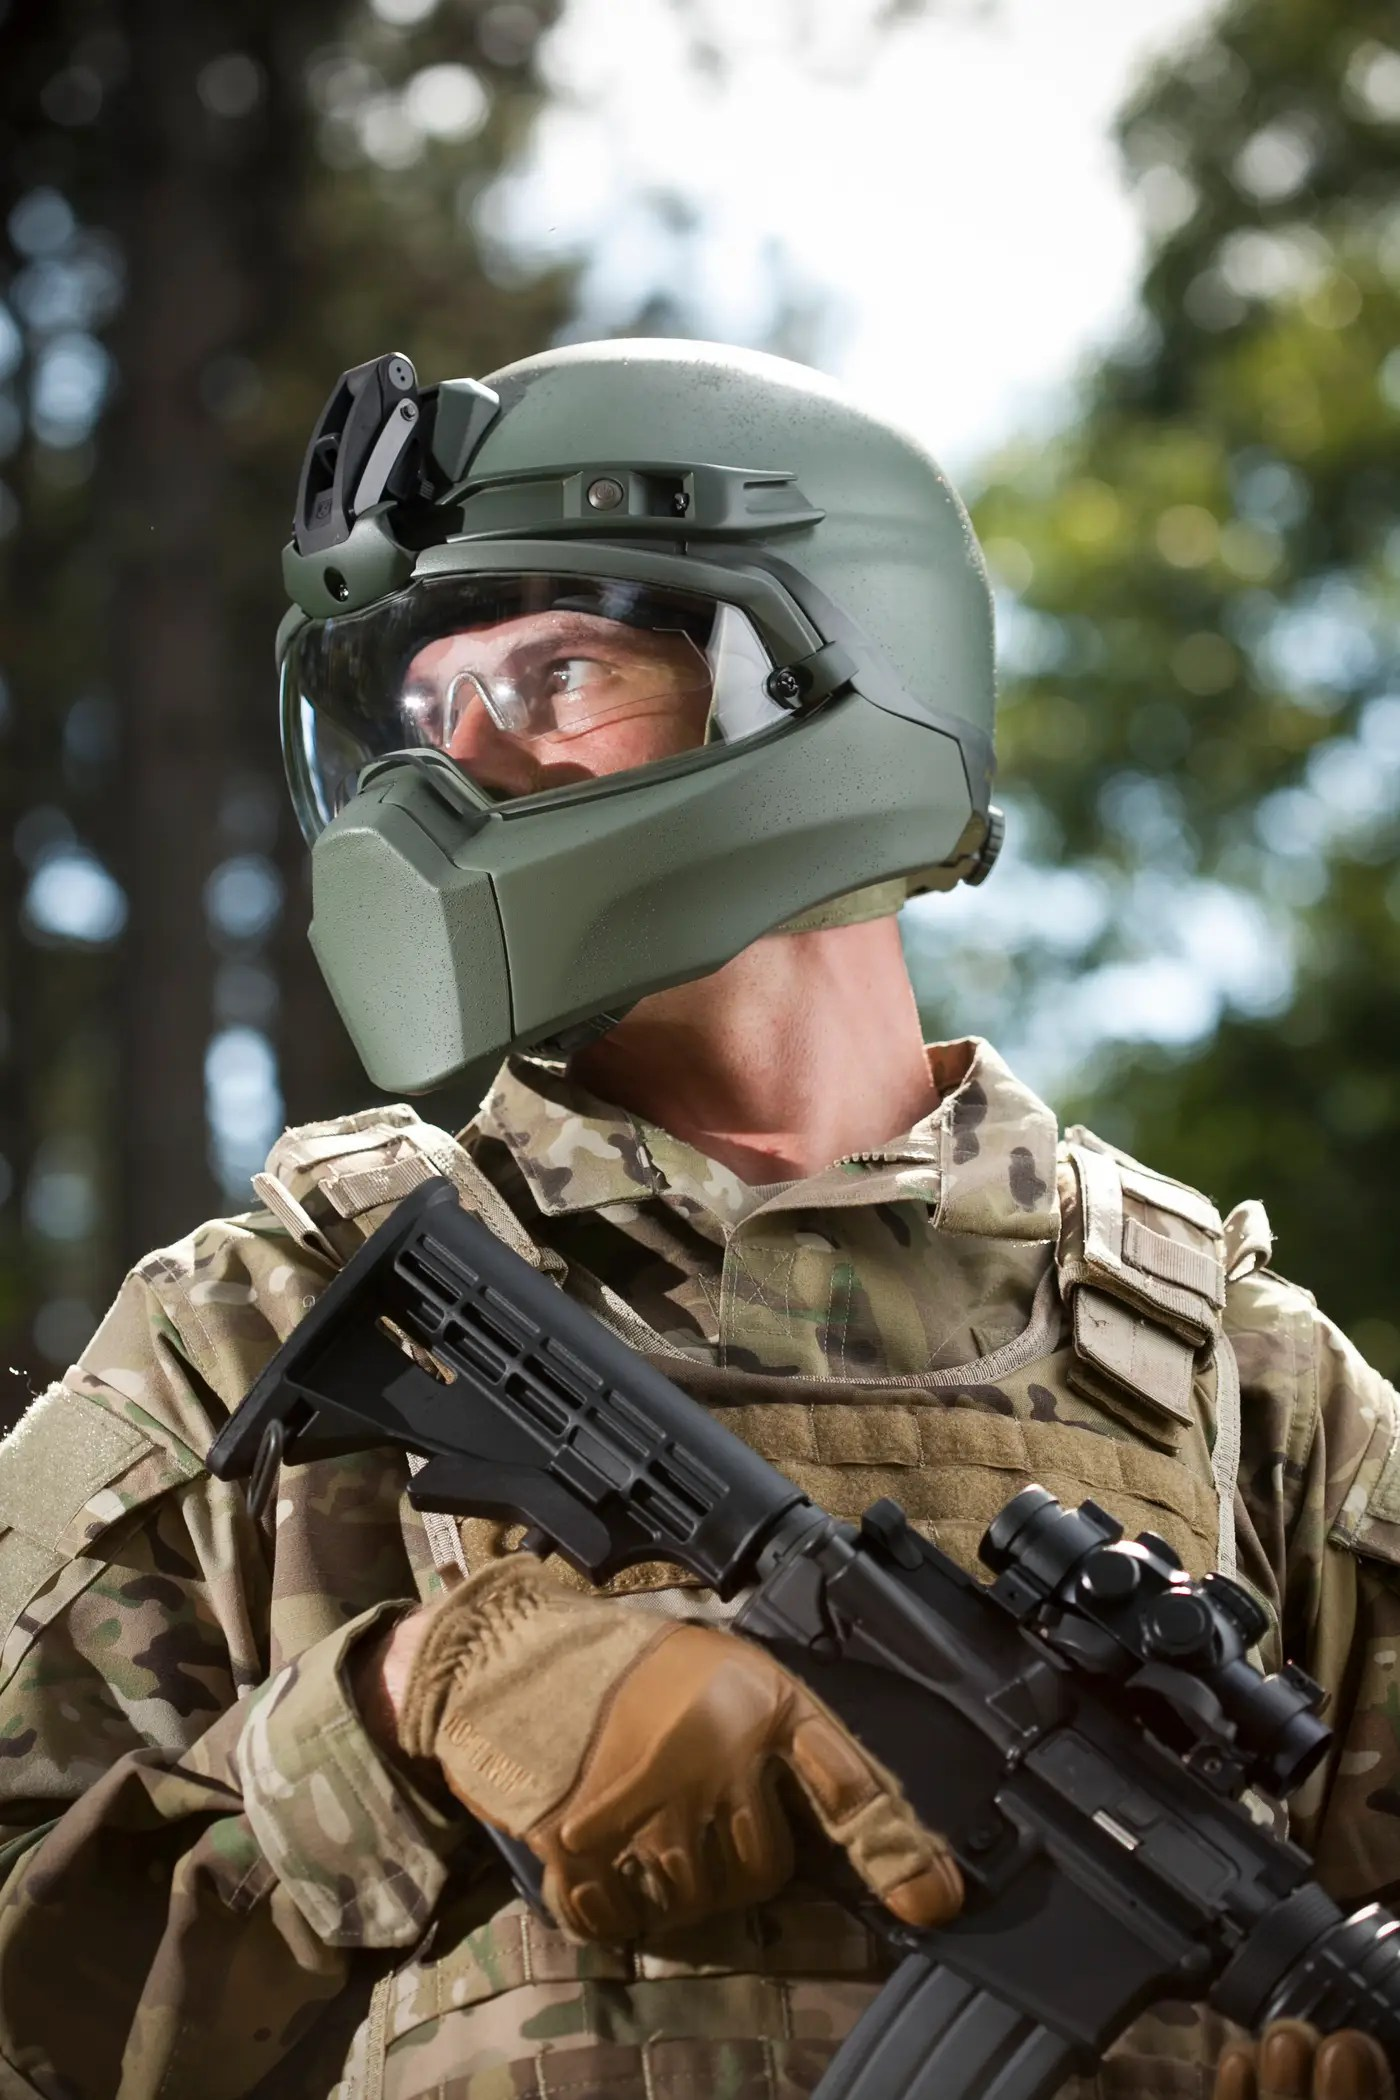 Supplier Denies That The New US Military Helmet Is Based